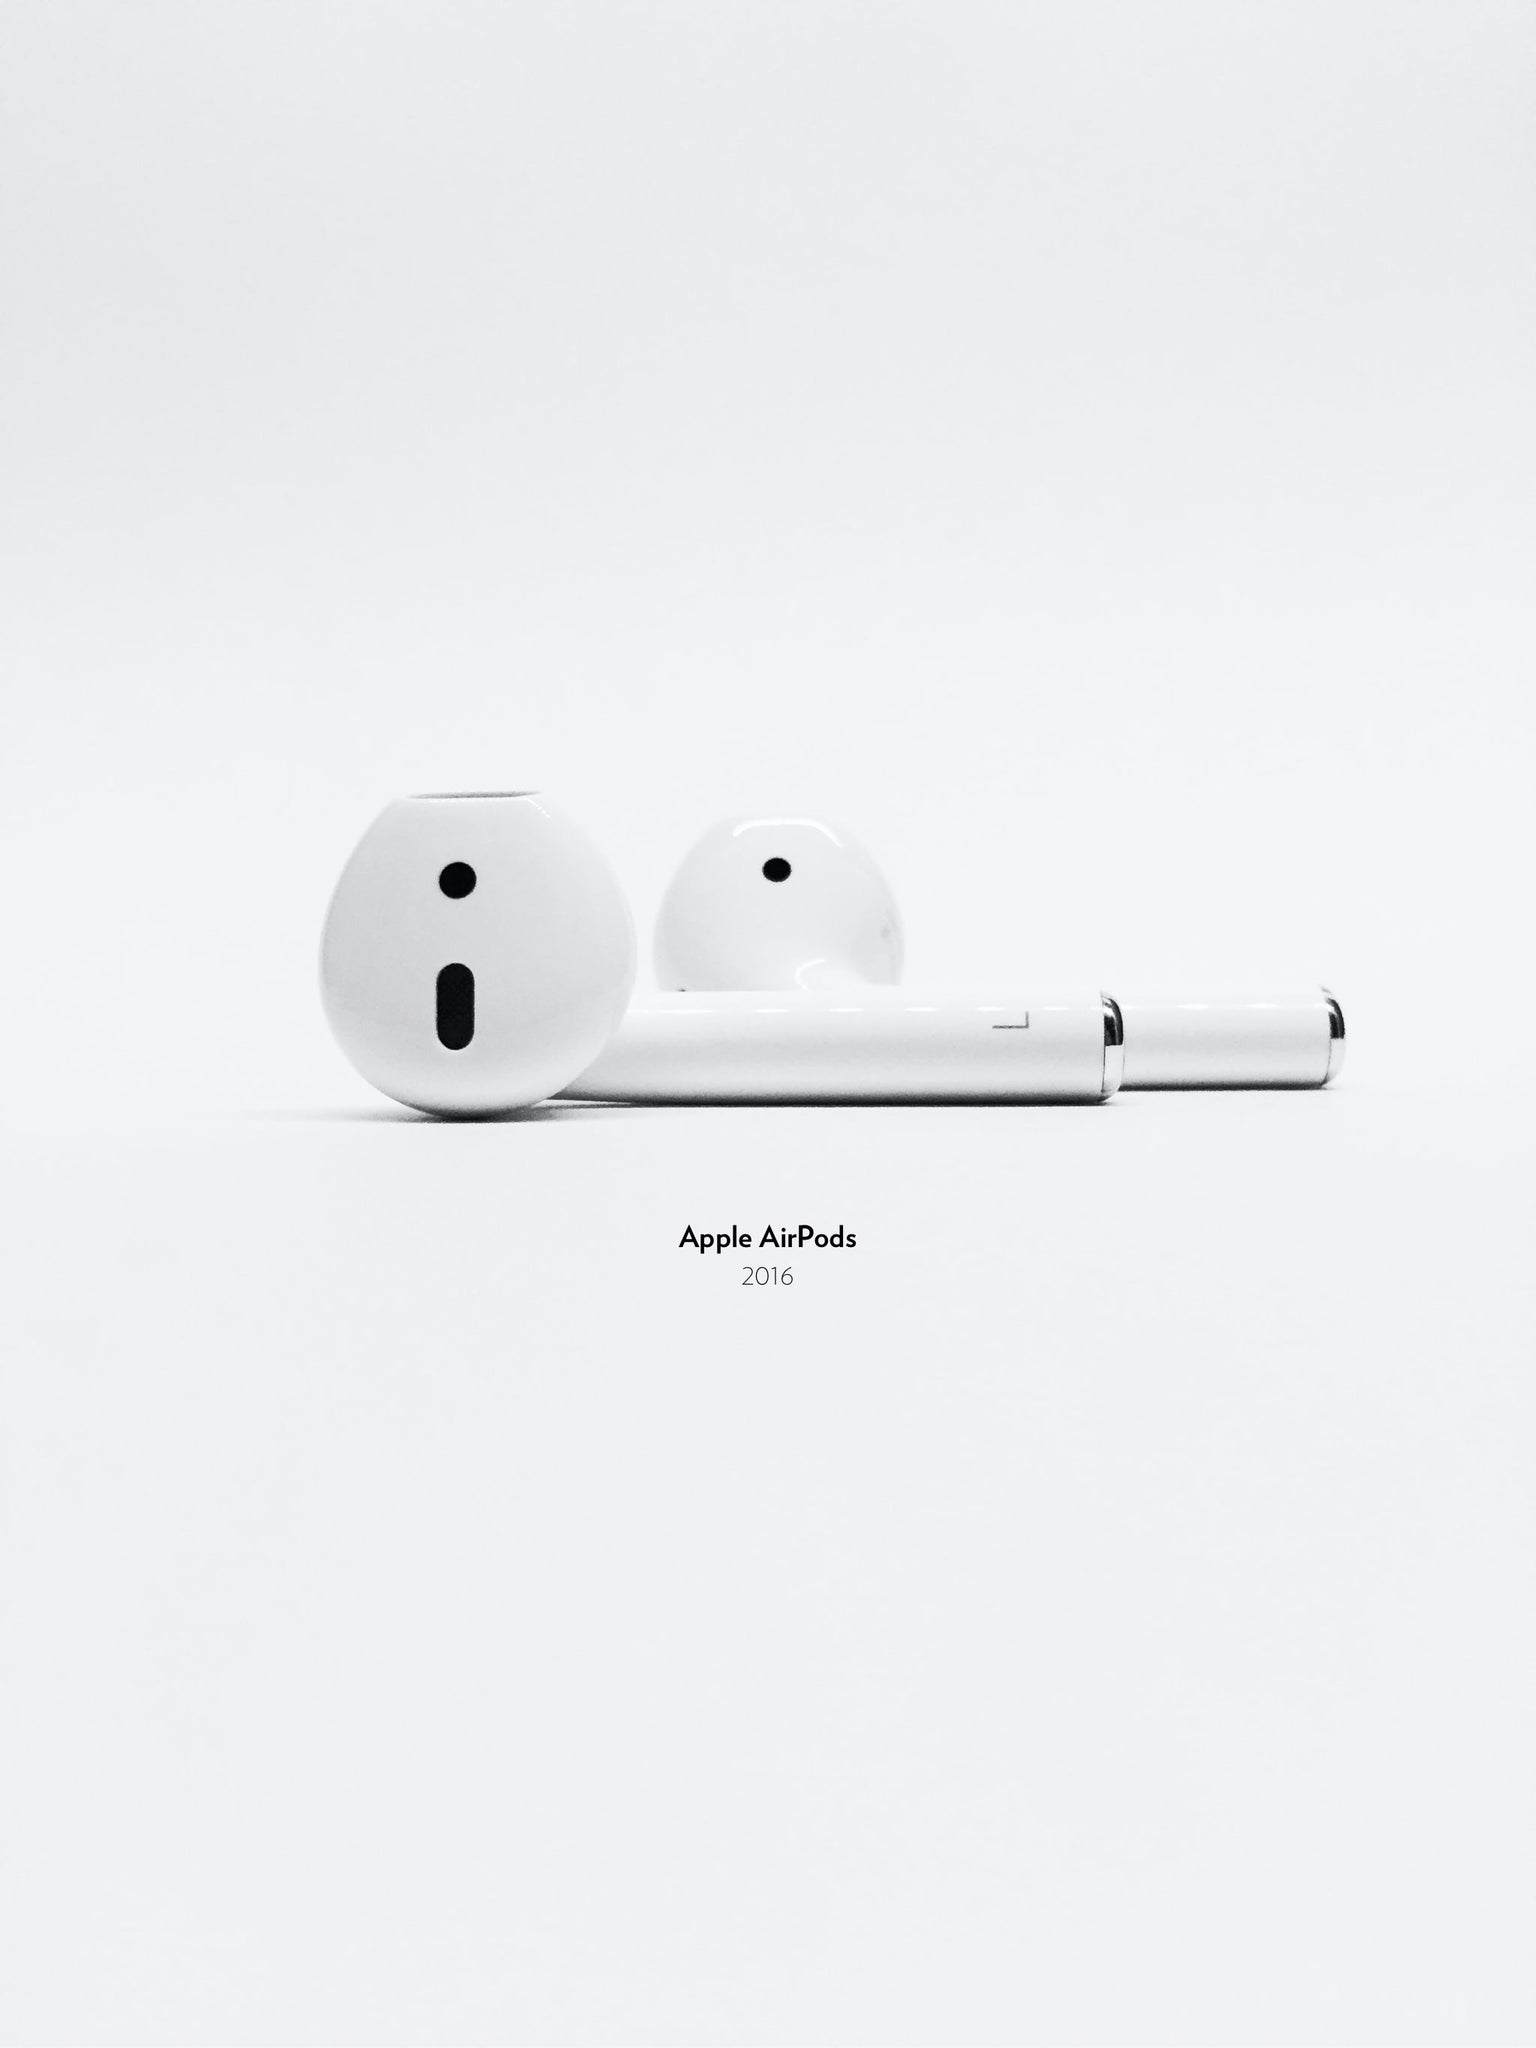 Apple AirPods, 2016.